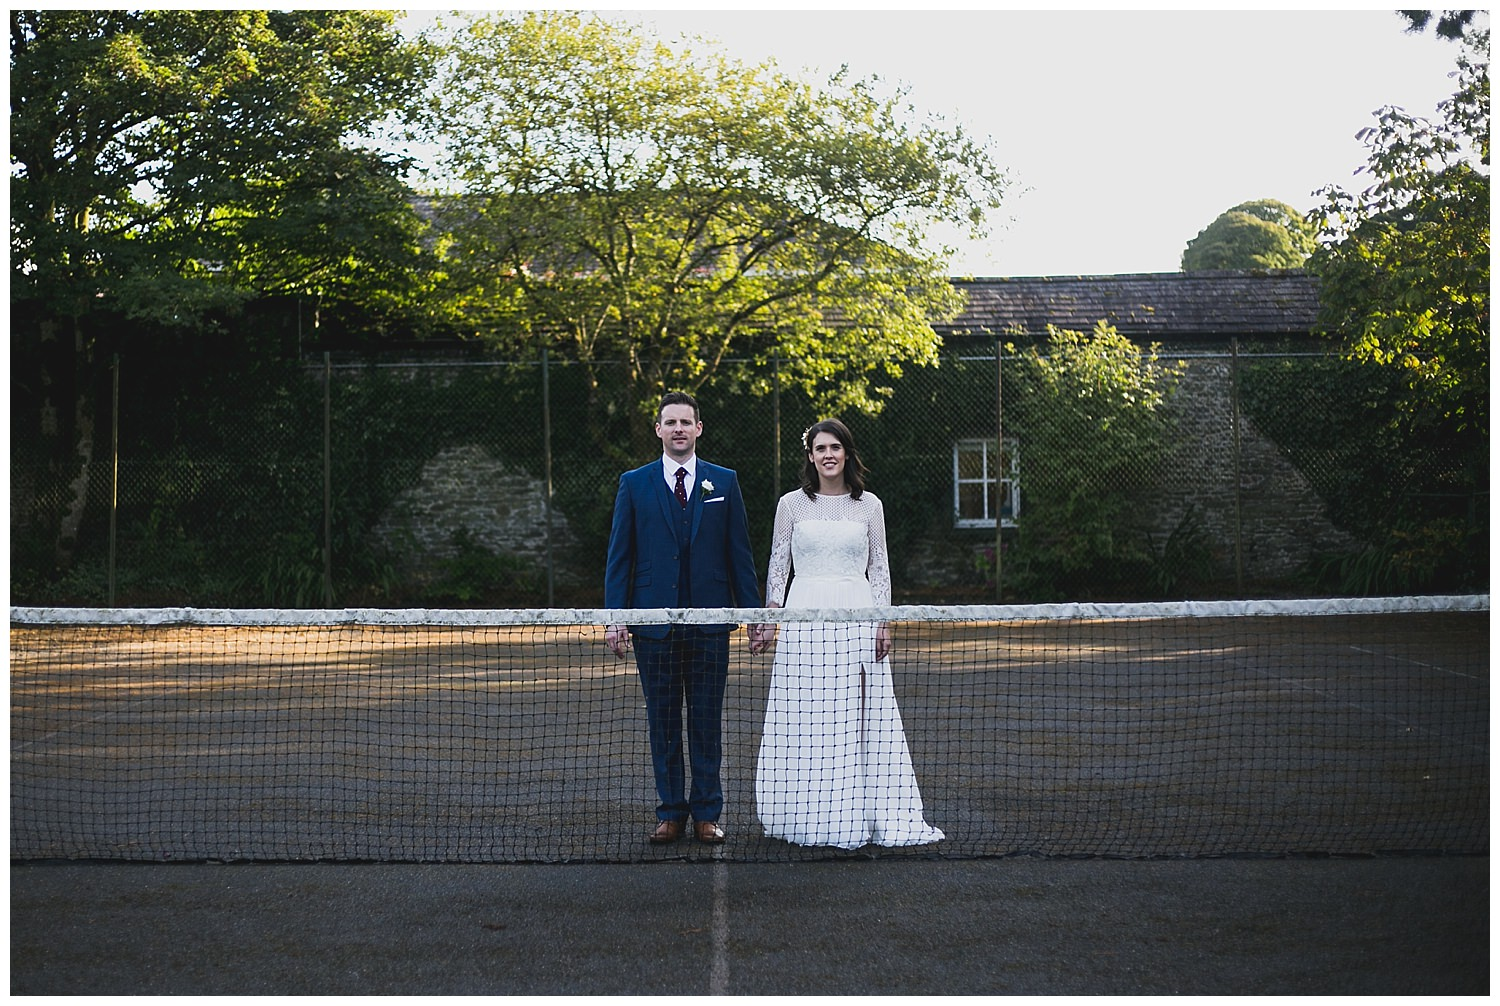 Wedding photographs at an old tennis court